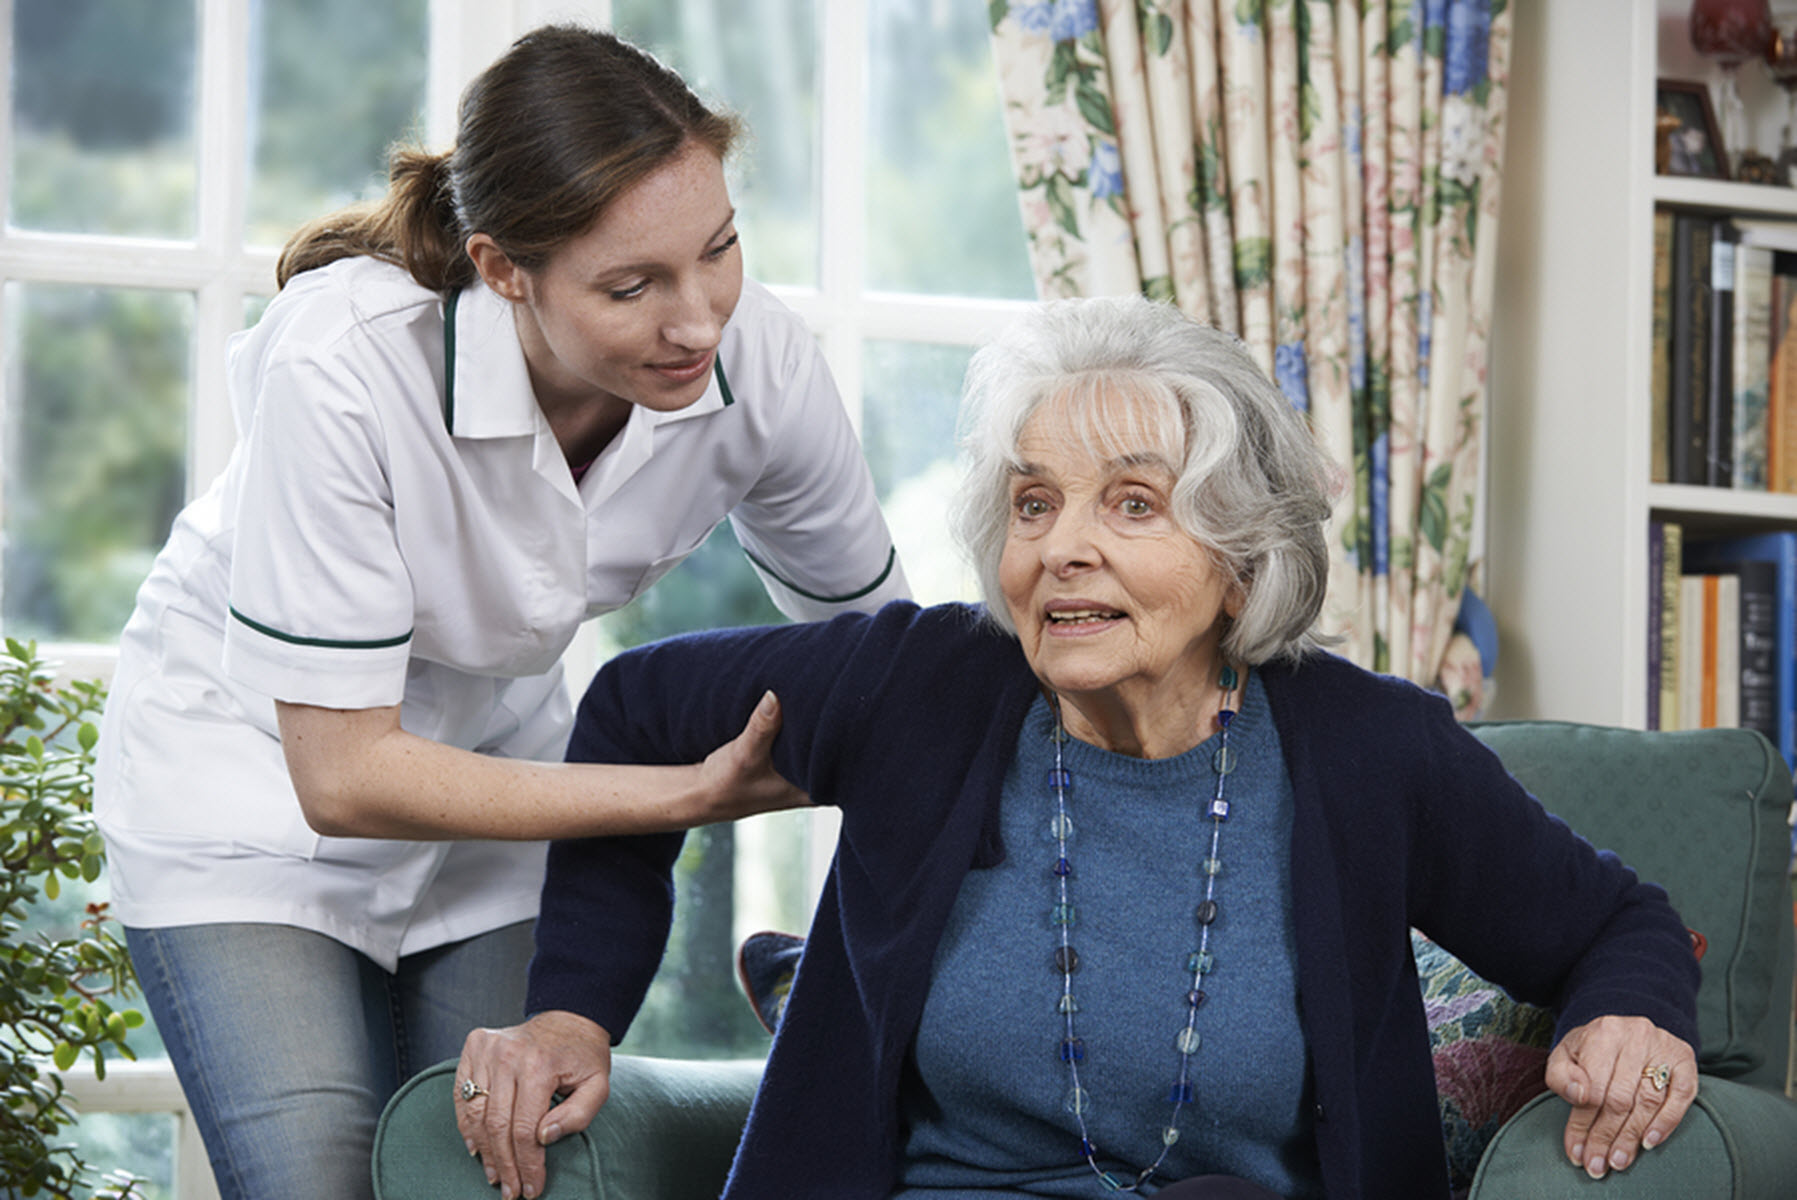 Homecare in Murray UT: Signs That You Need Help